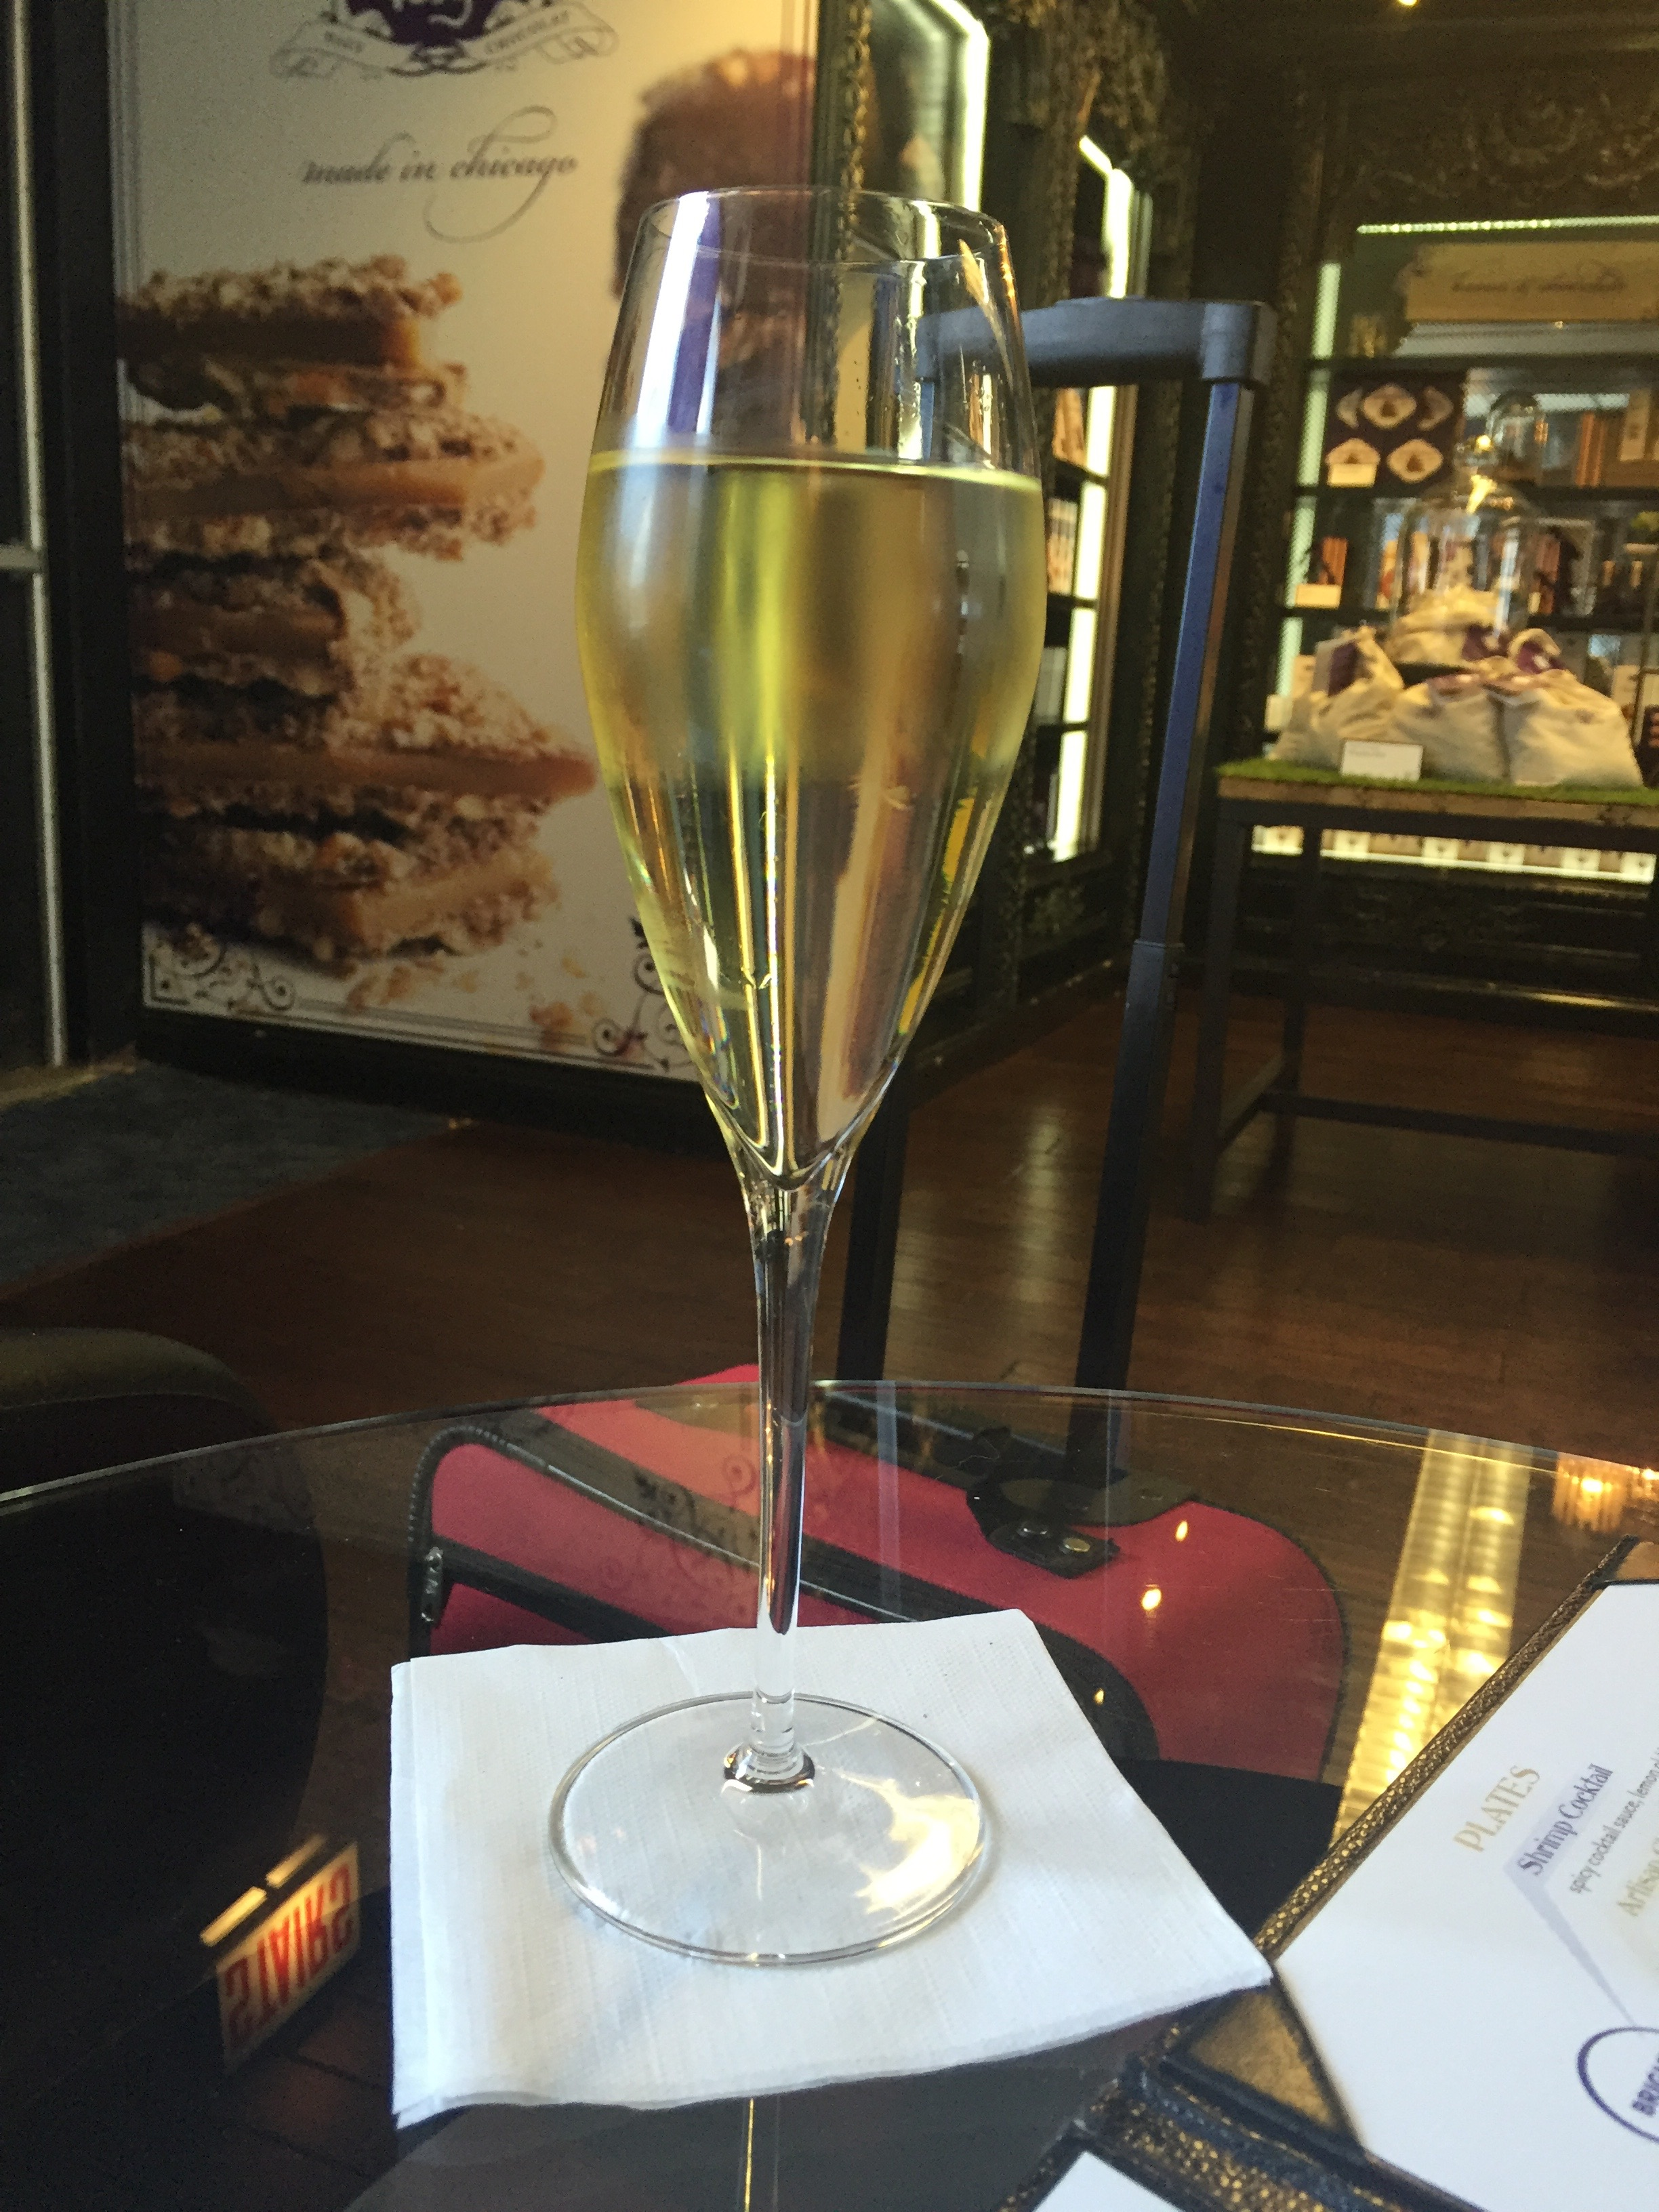 Airport champagne!